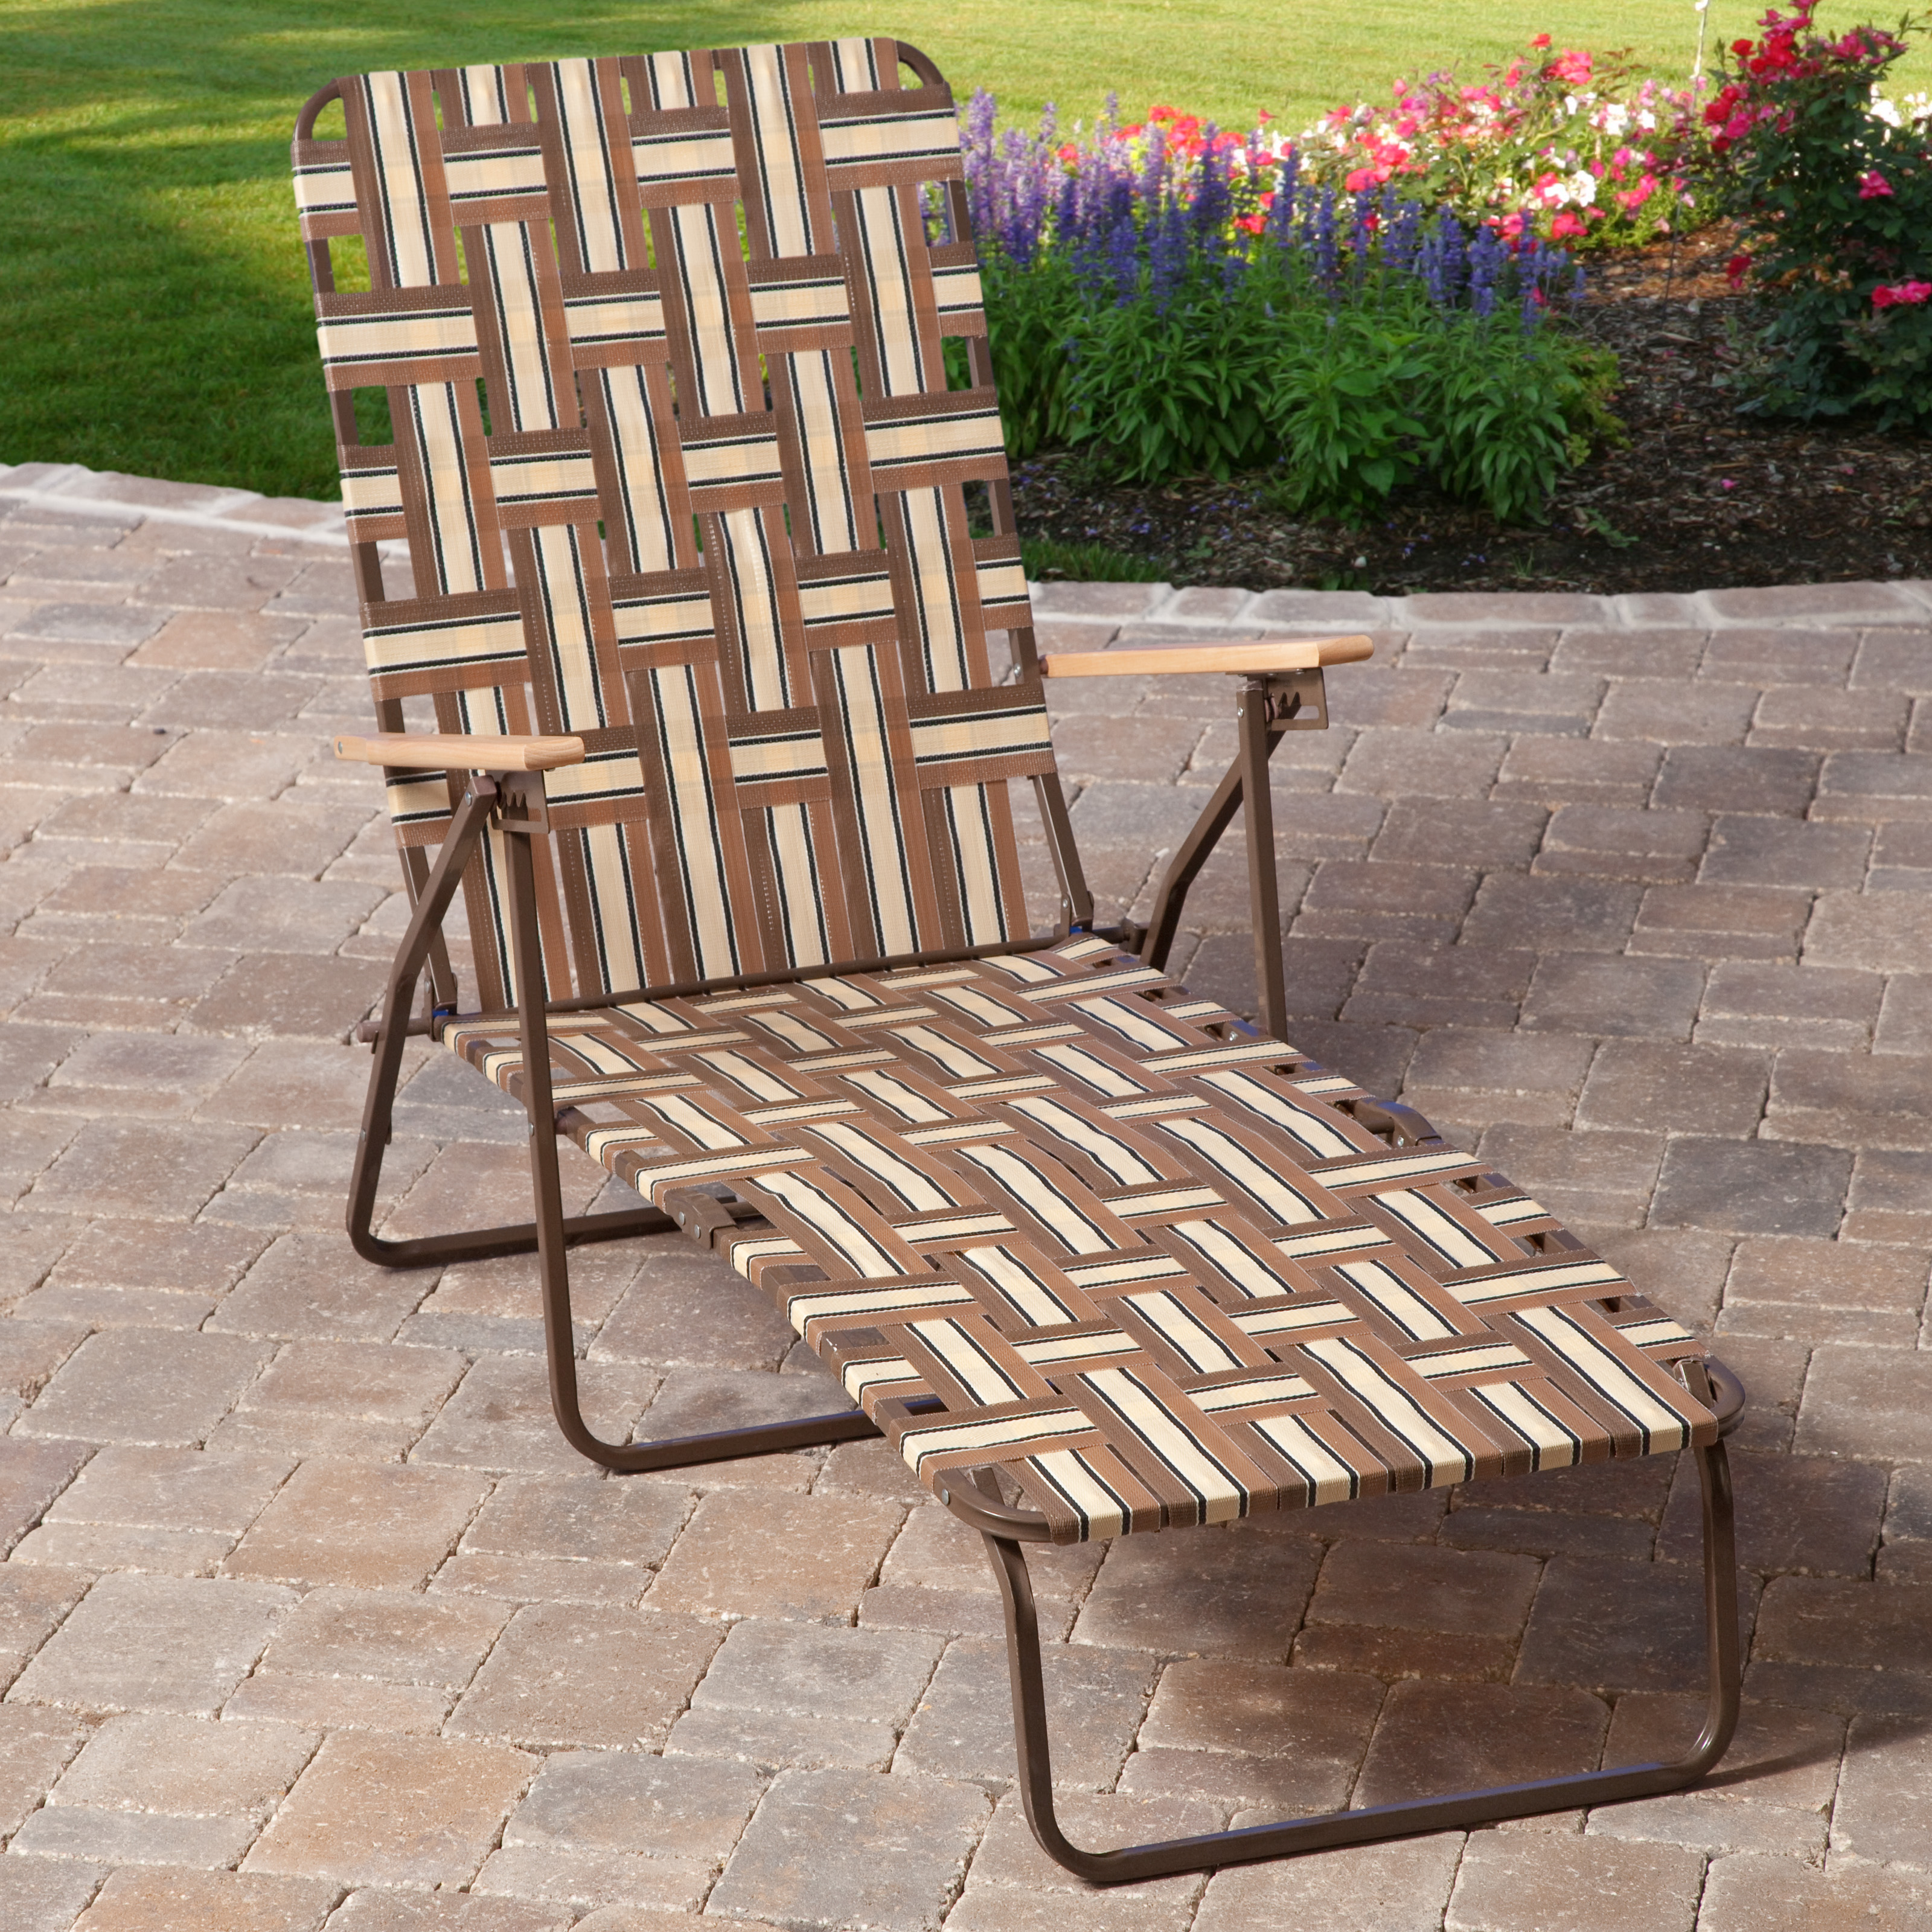 Array   Deluxe Folding Web Chaise Lounge Outdoor Chaise Lounges at Hayneedle. Outdoor Lounge Furniture Masters 19046046   Ongek net